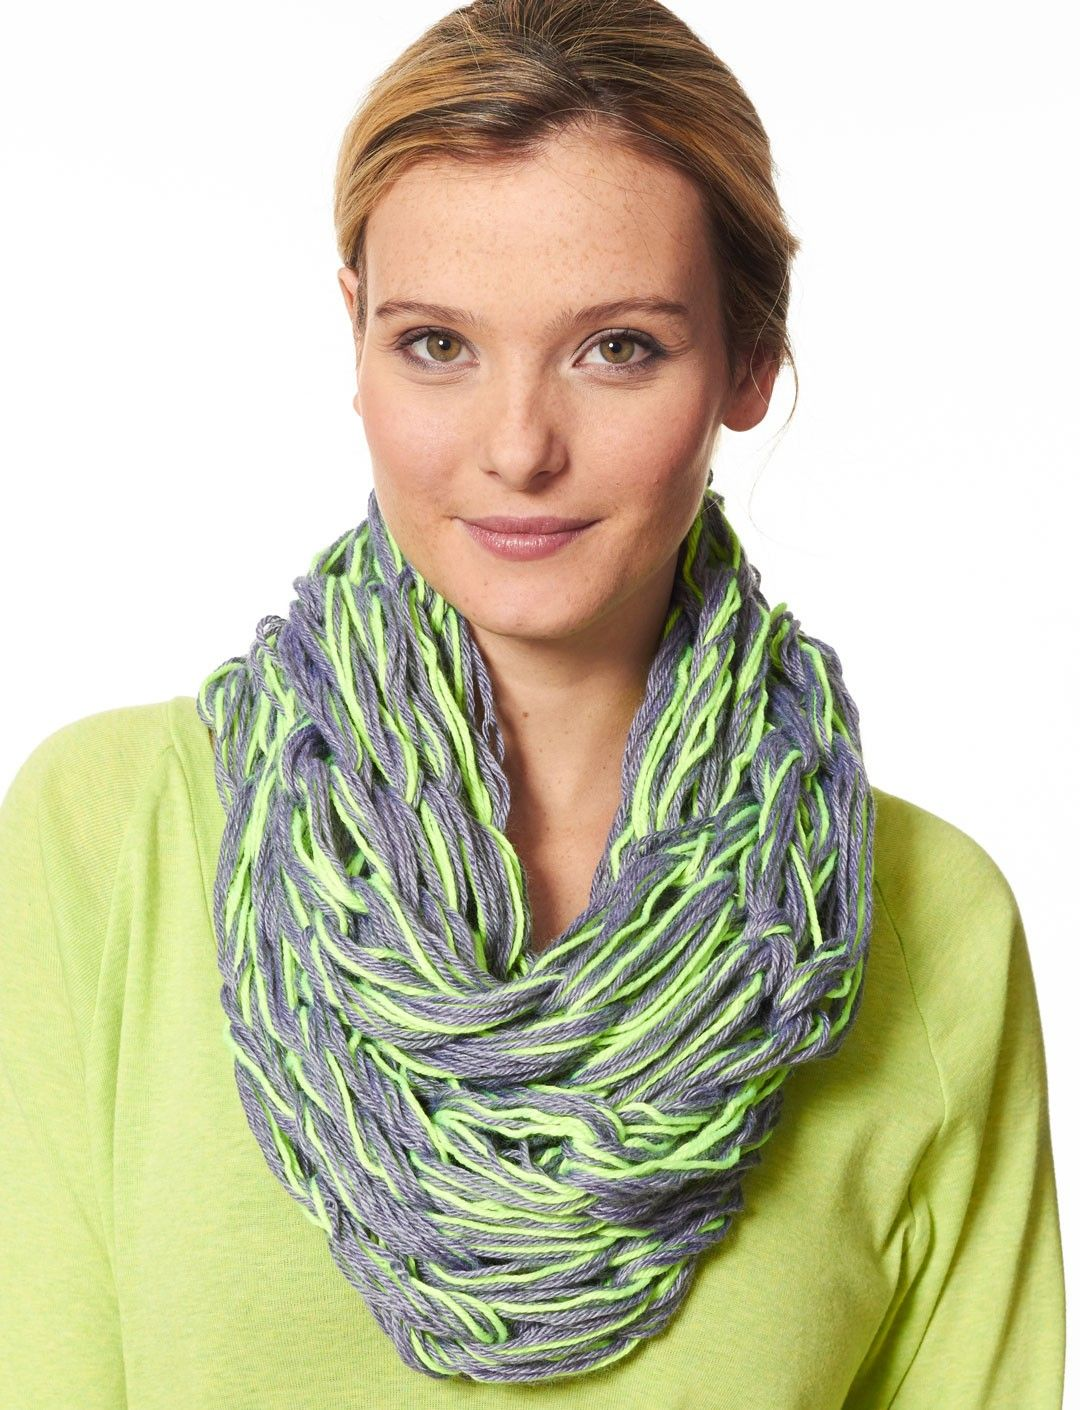 Arm knit cowl yarnspirations pinterest arm knitting knit arm knit cowl bankloansurffo Images